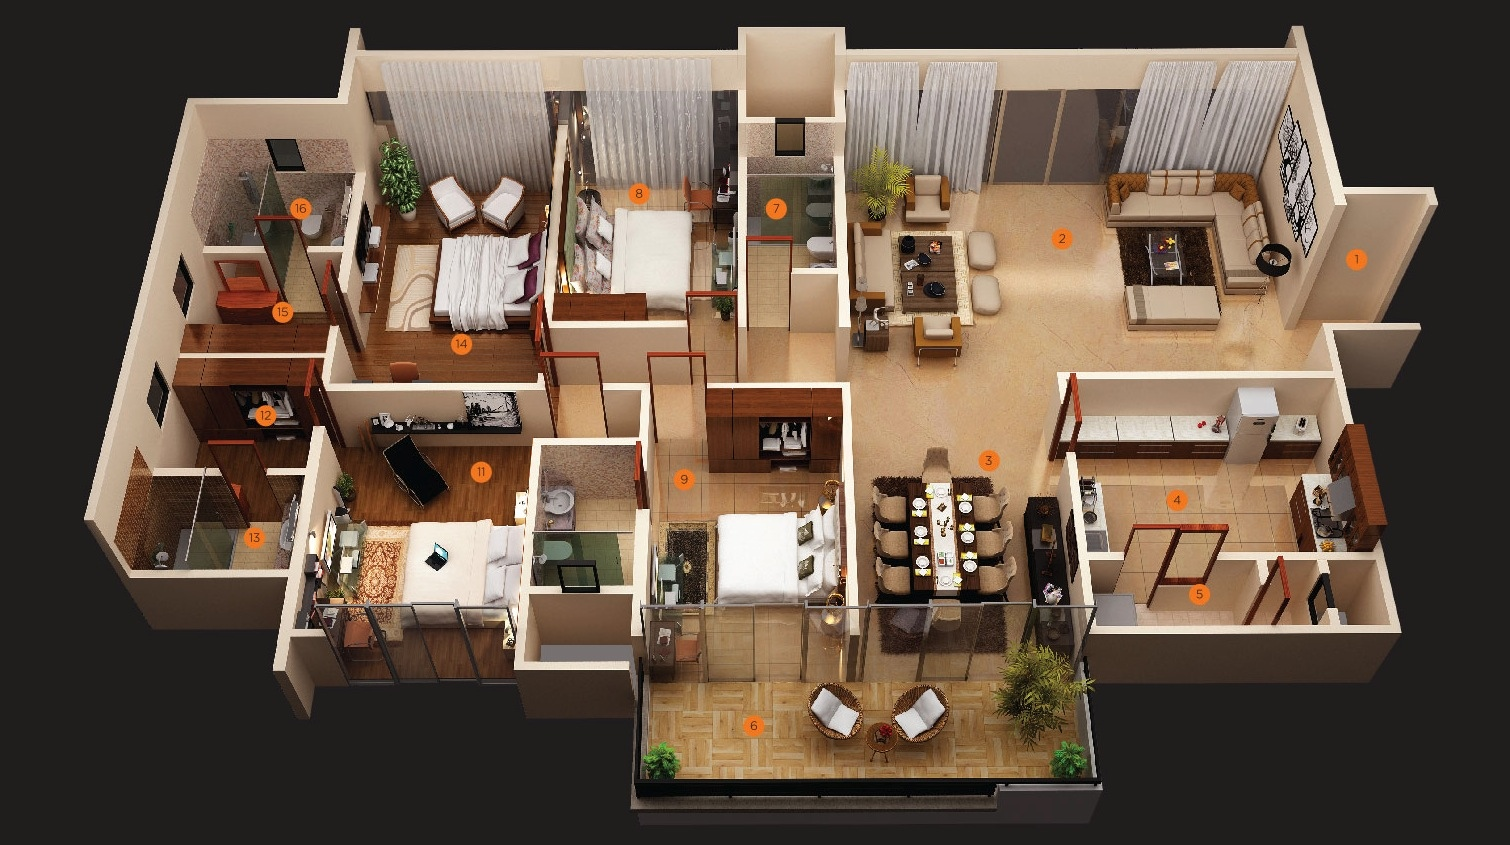 4 bedroom apartment house plans for Living room 4 pics 1 word